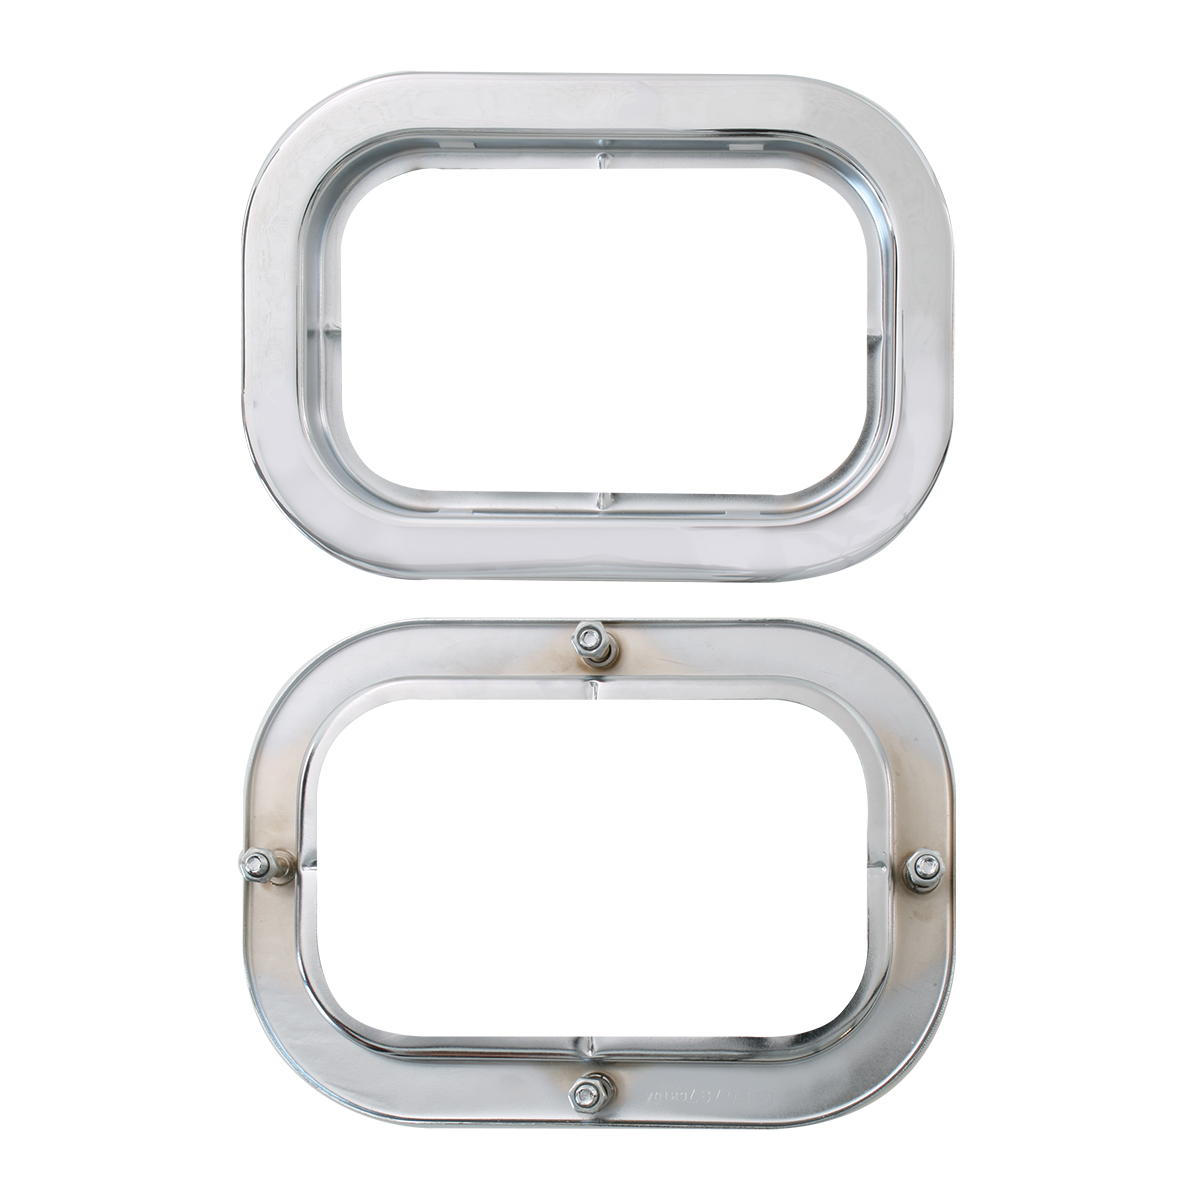 "77019 Front & Back of S.S. Flange Mount Bezel with Hidden Studs for 5.25"" Large Rectangular Light"